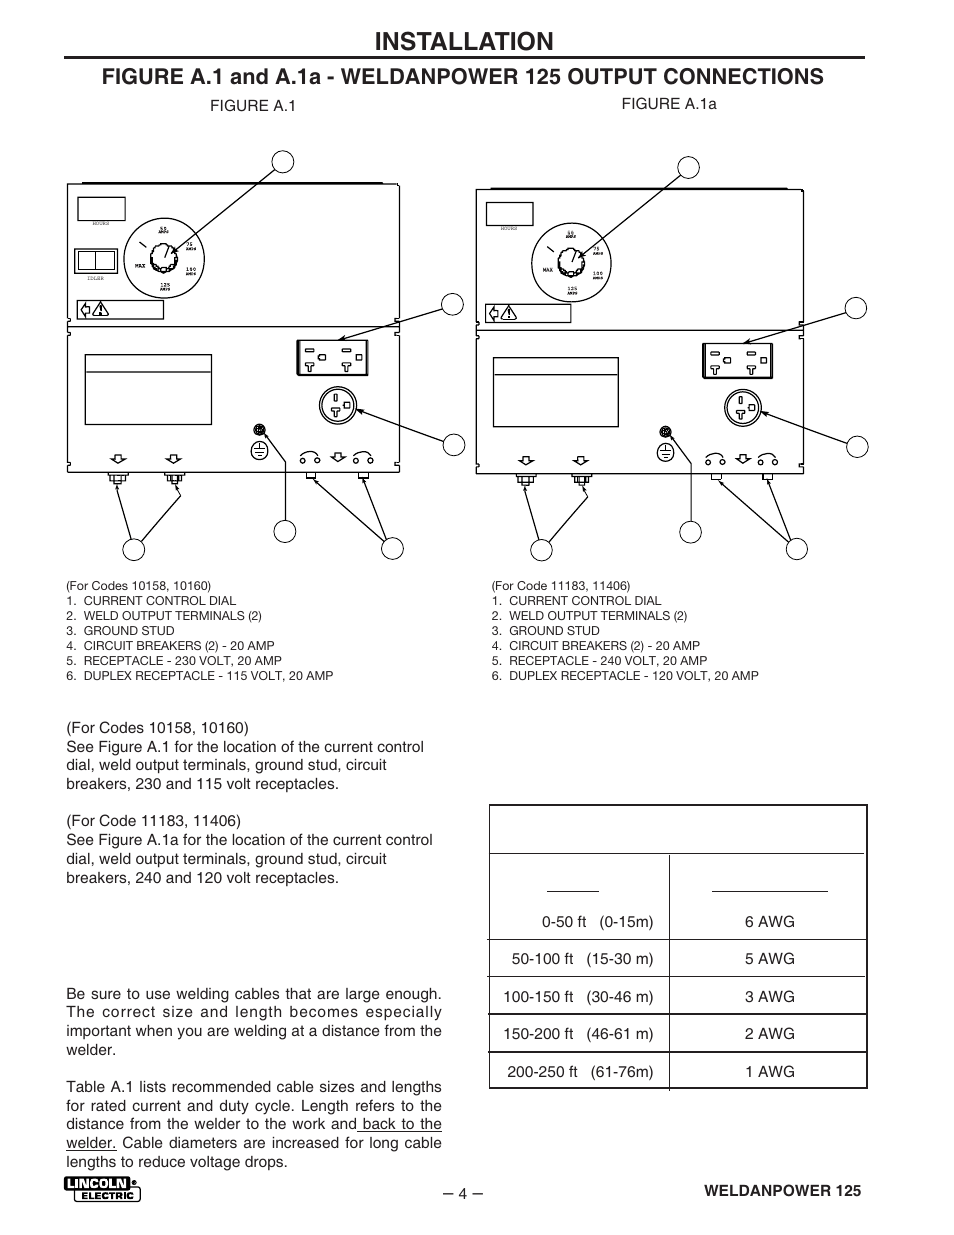 hight resolution of installation electrical output connections welding cable connections lincoln electric weldanpower 125 im530 c user manual page 11 40